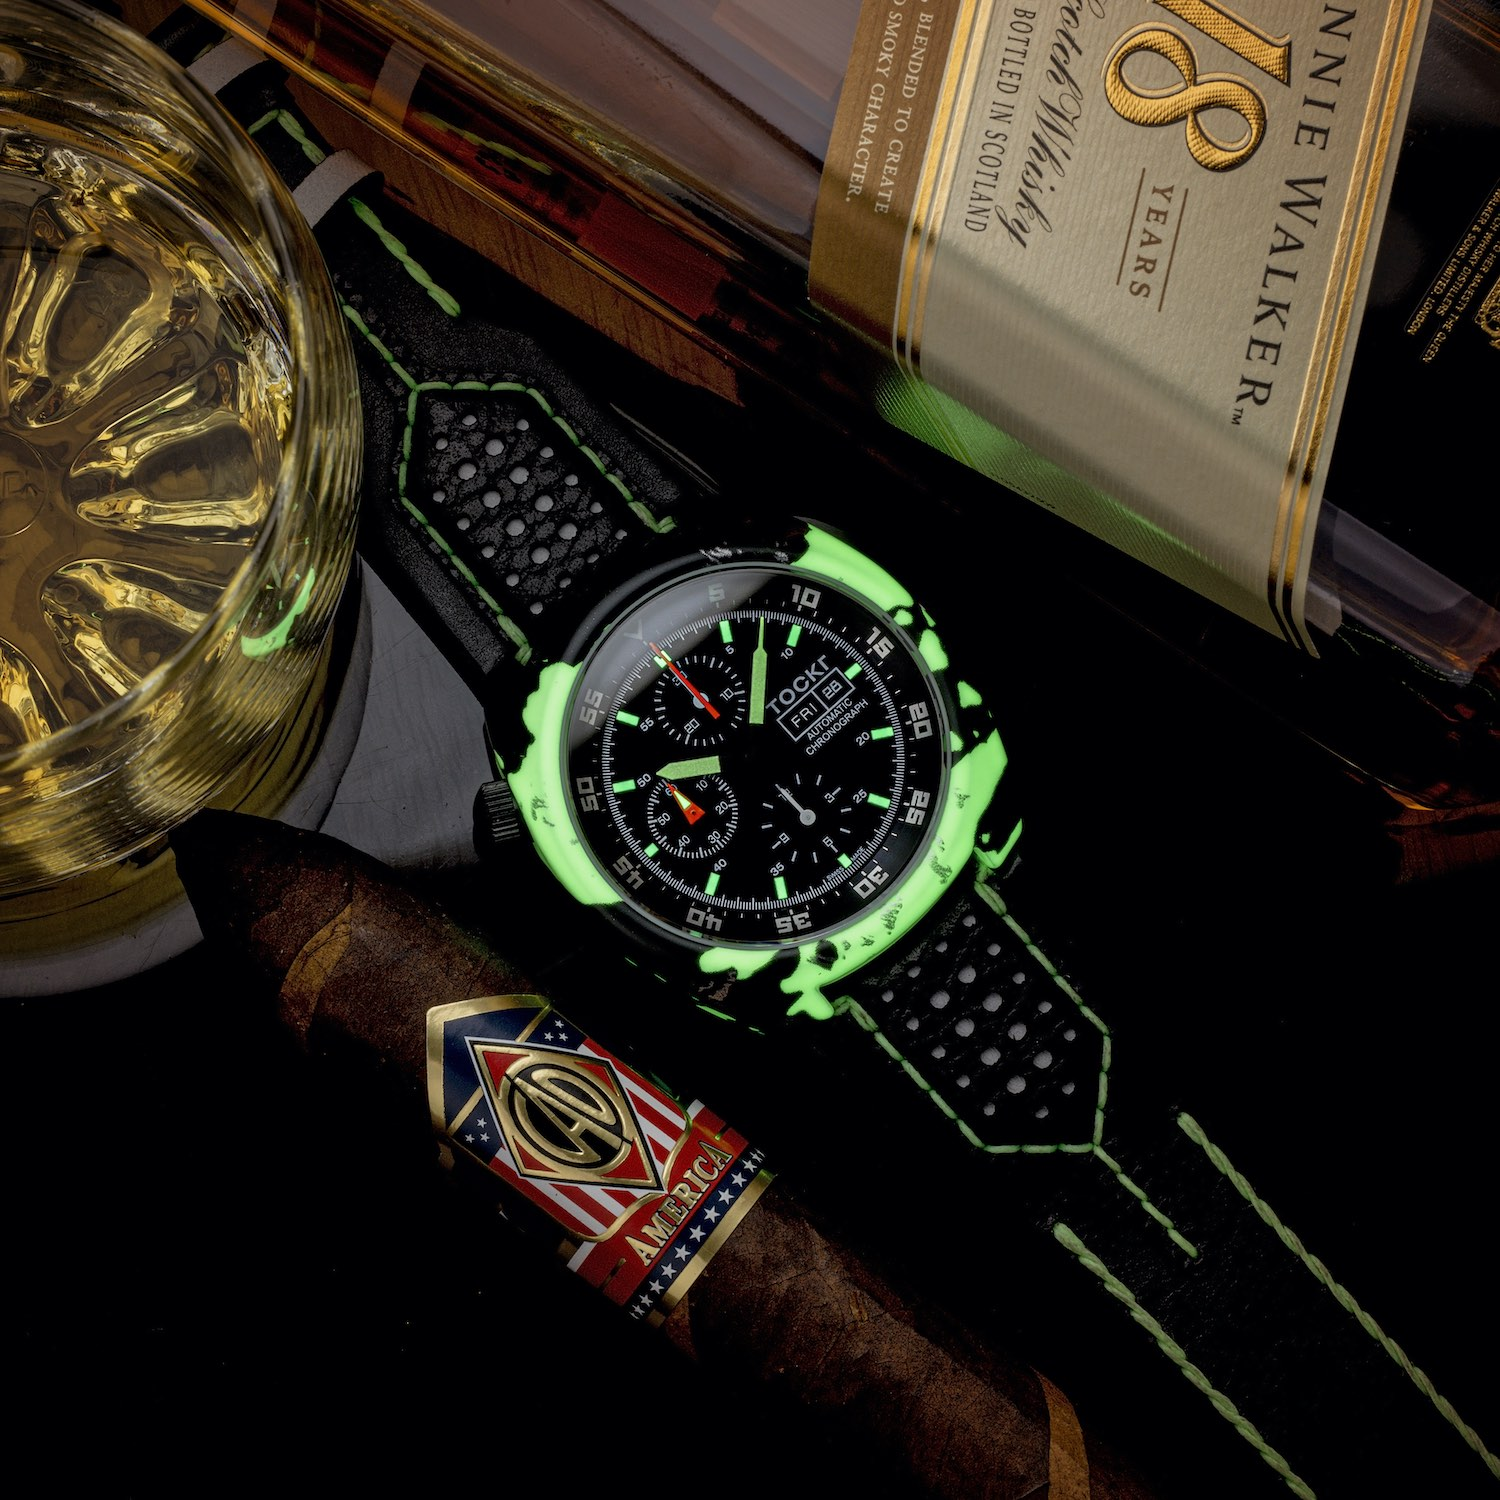 Tockr Air-Defender Lume with Luminescent Hydro Dipped Cases - 5